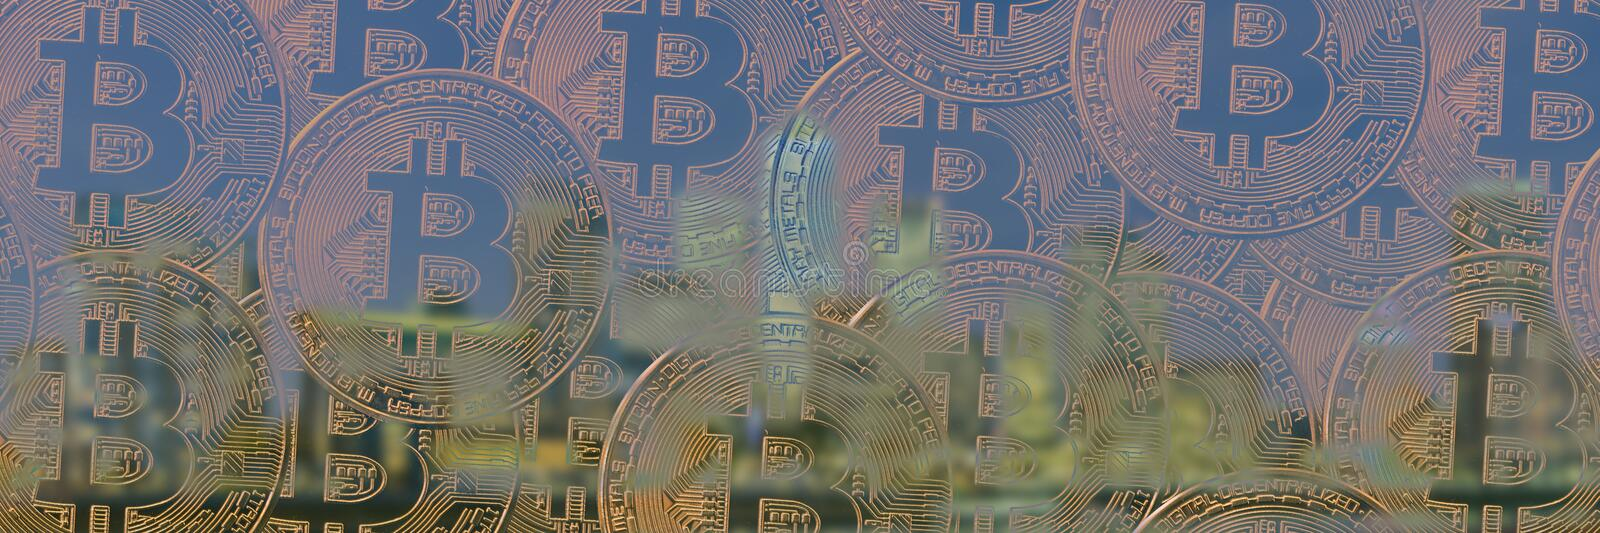 Panoramic banner template made of Bitcoins.  stock images